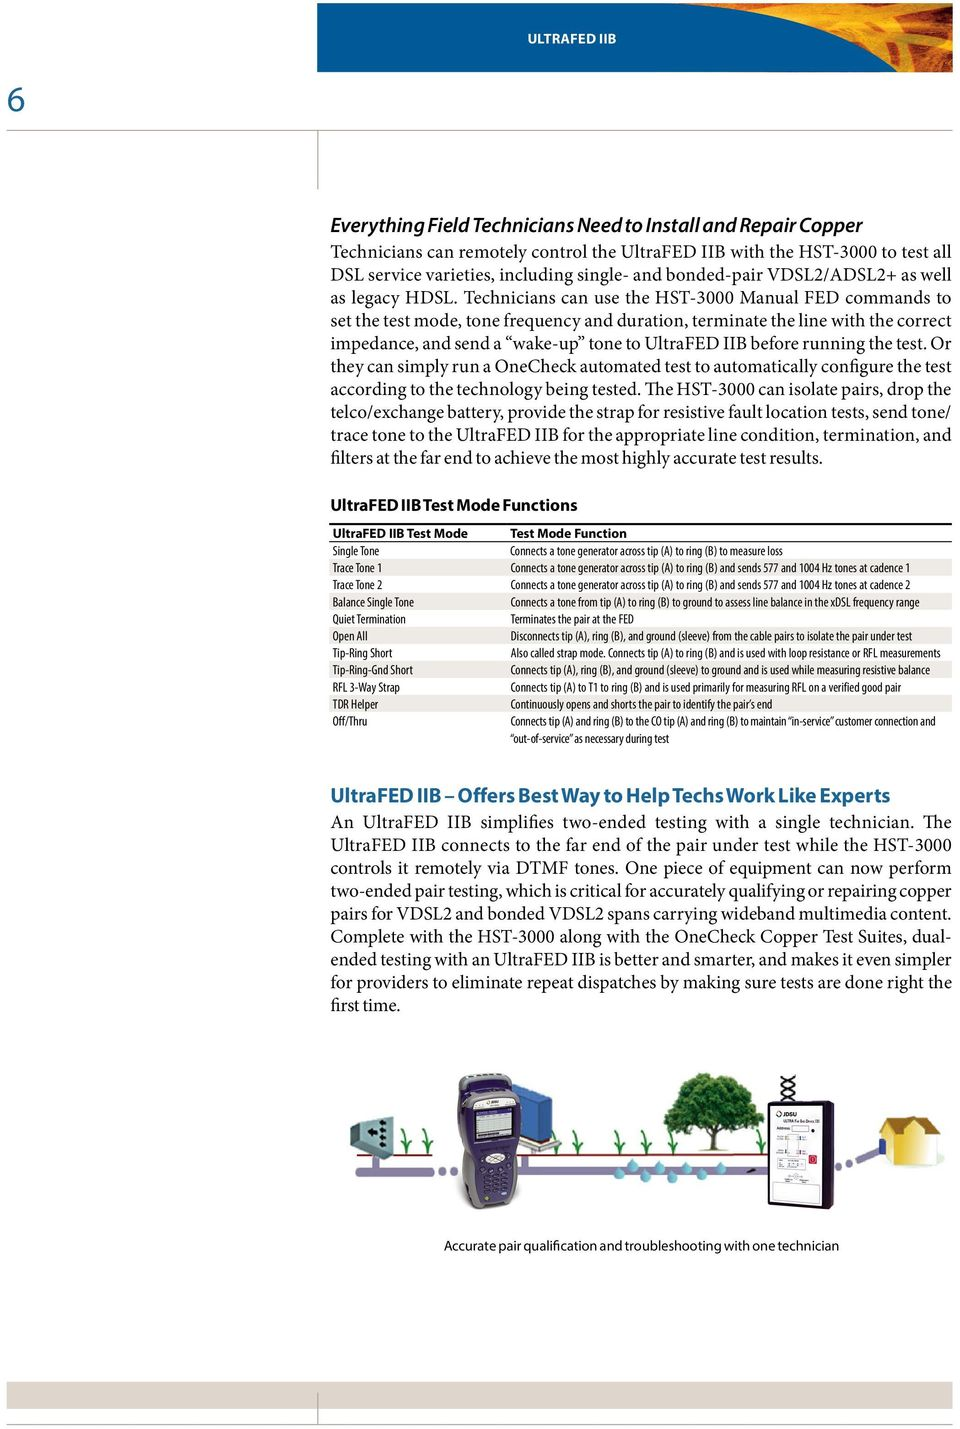 Technicians can use the HST-3000 Manual FED commands to set the test mode, tone frequency and duration, terminate the line with the correct impedance, and send a wake-up tone to UltraFED IIB before